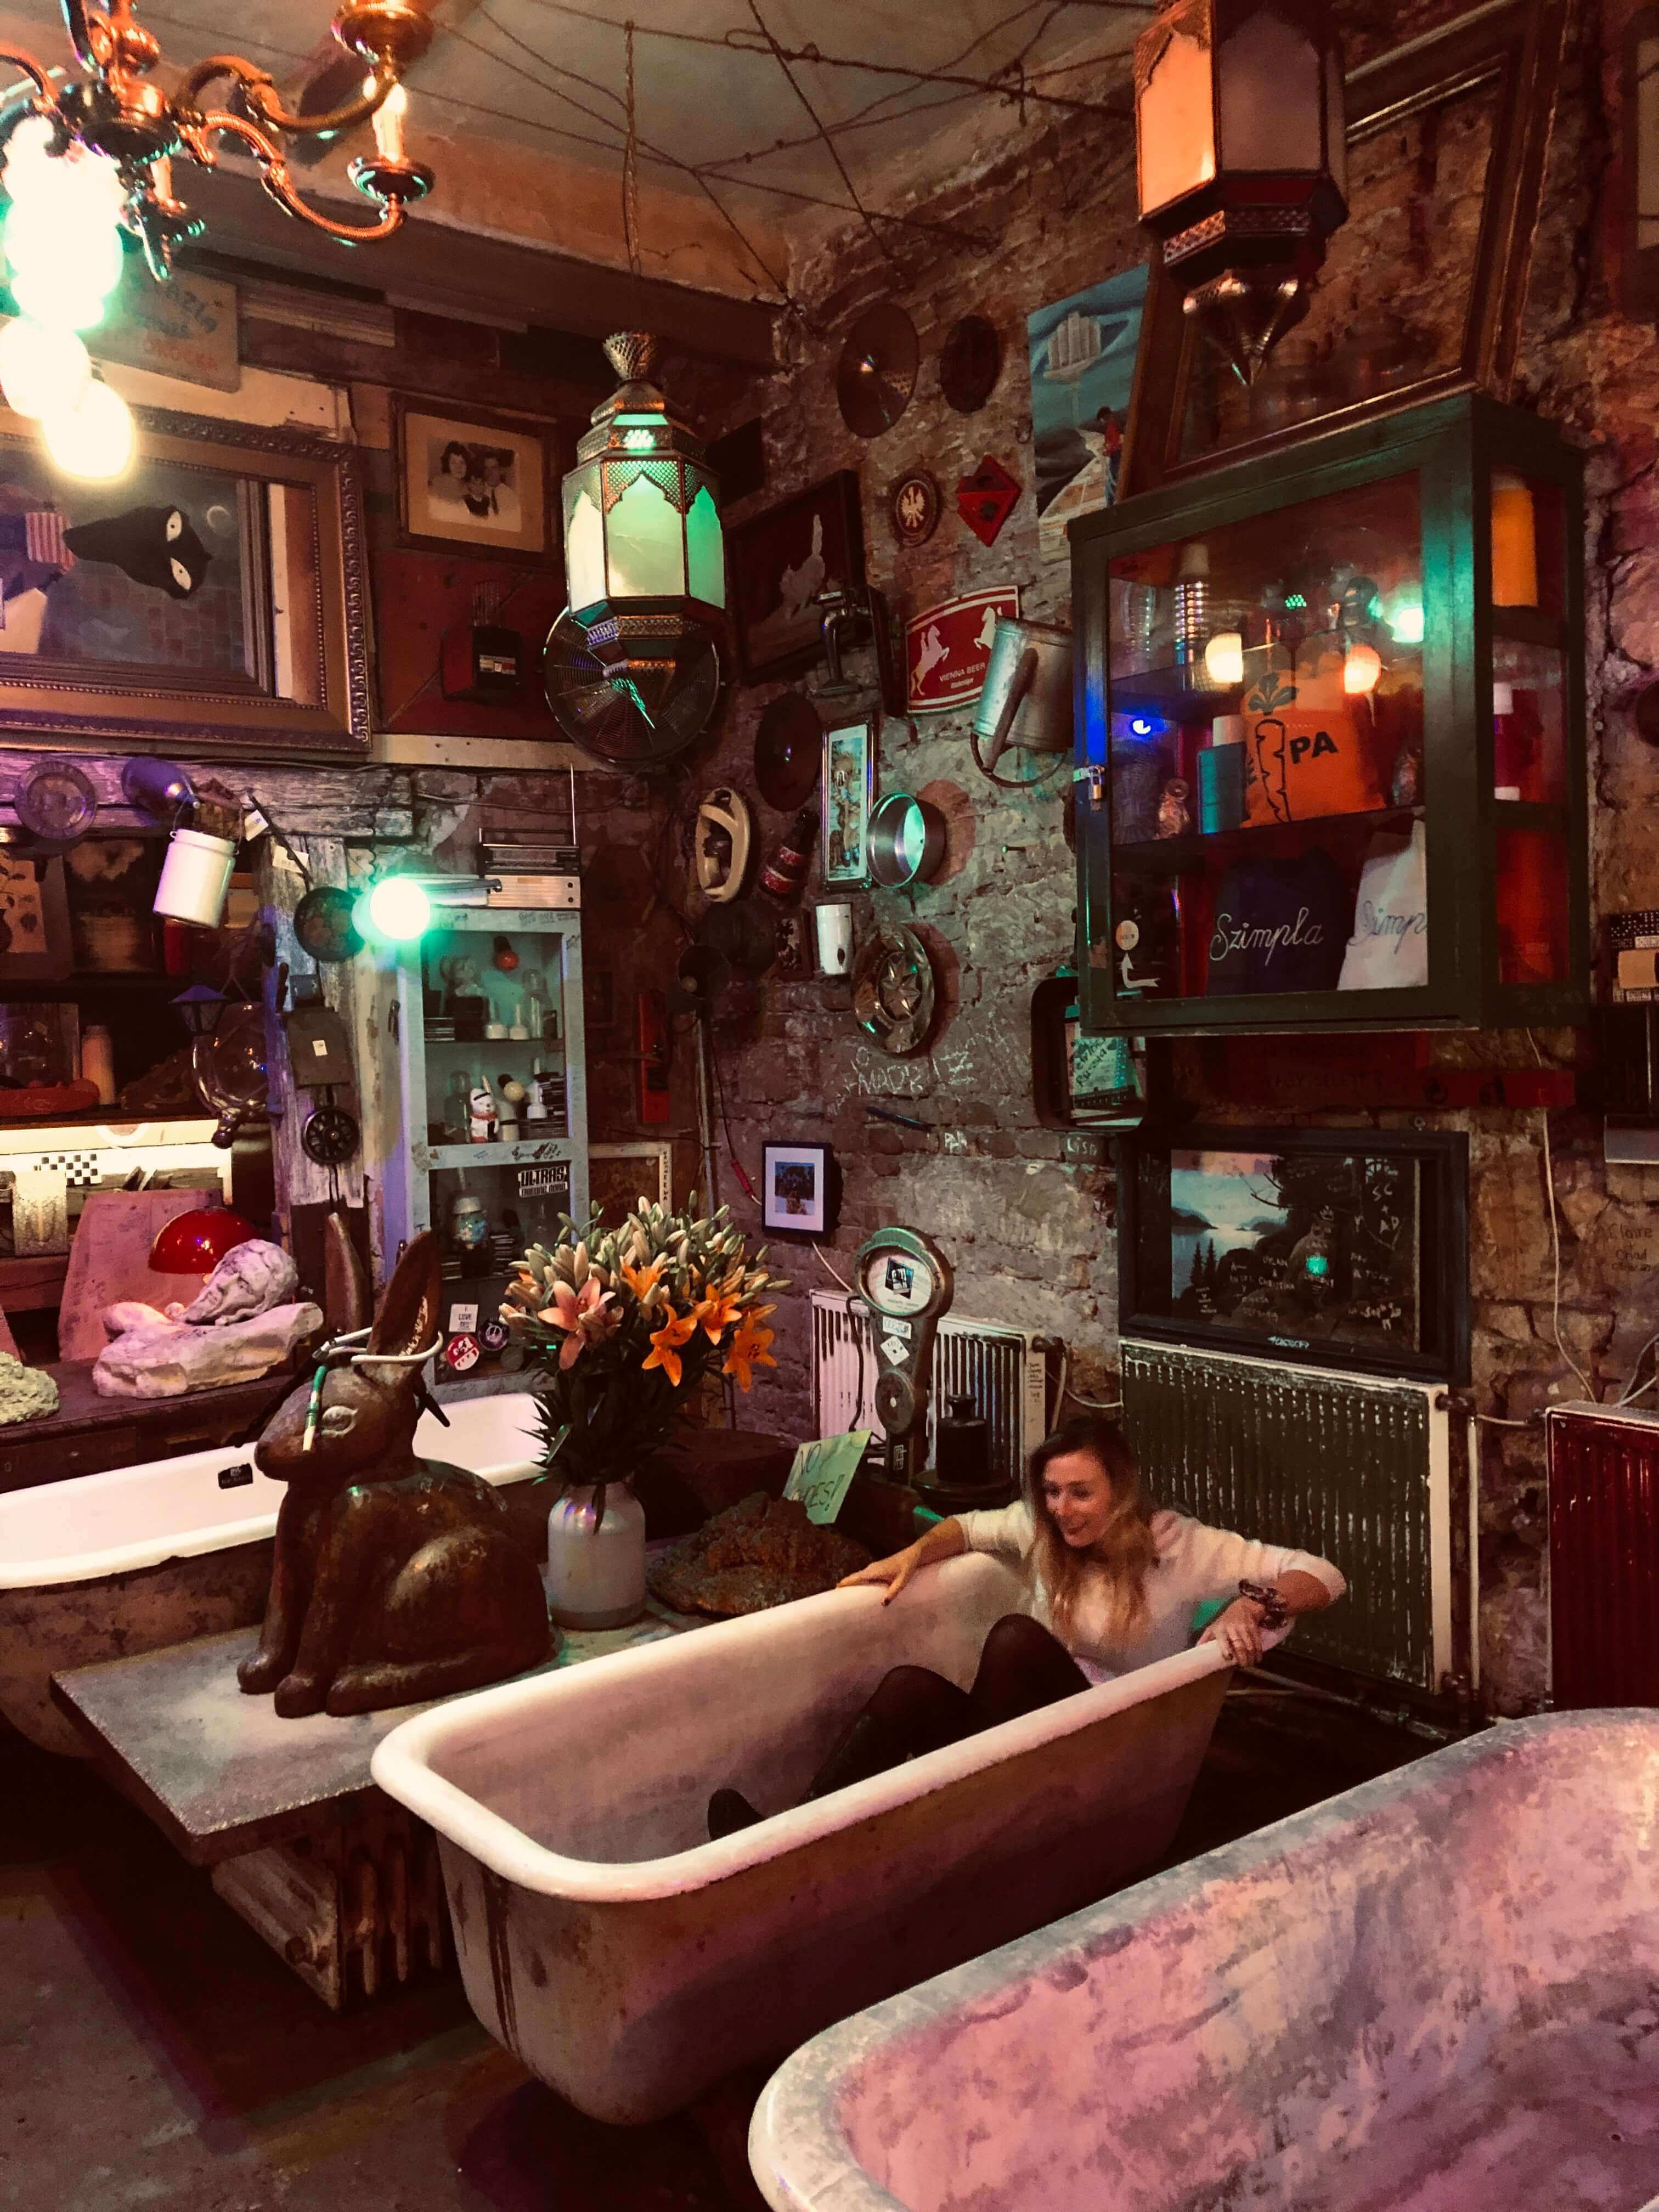 ruin bar budapest is an amazing attraction in Budapest